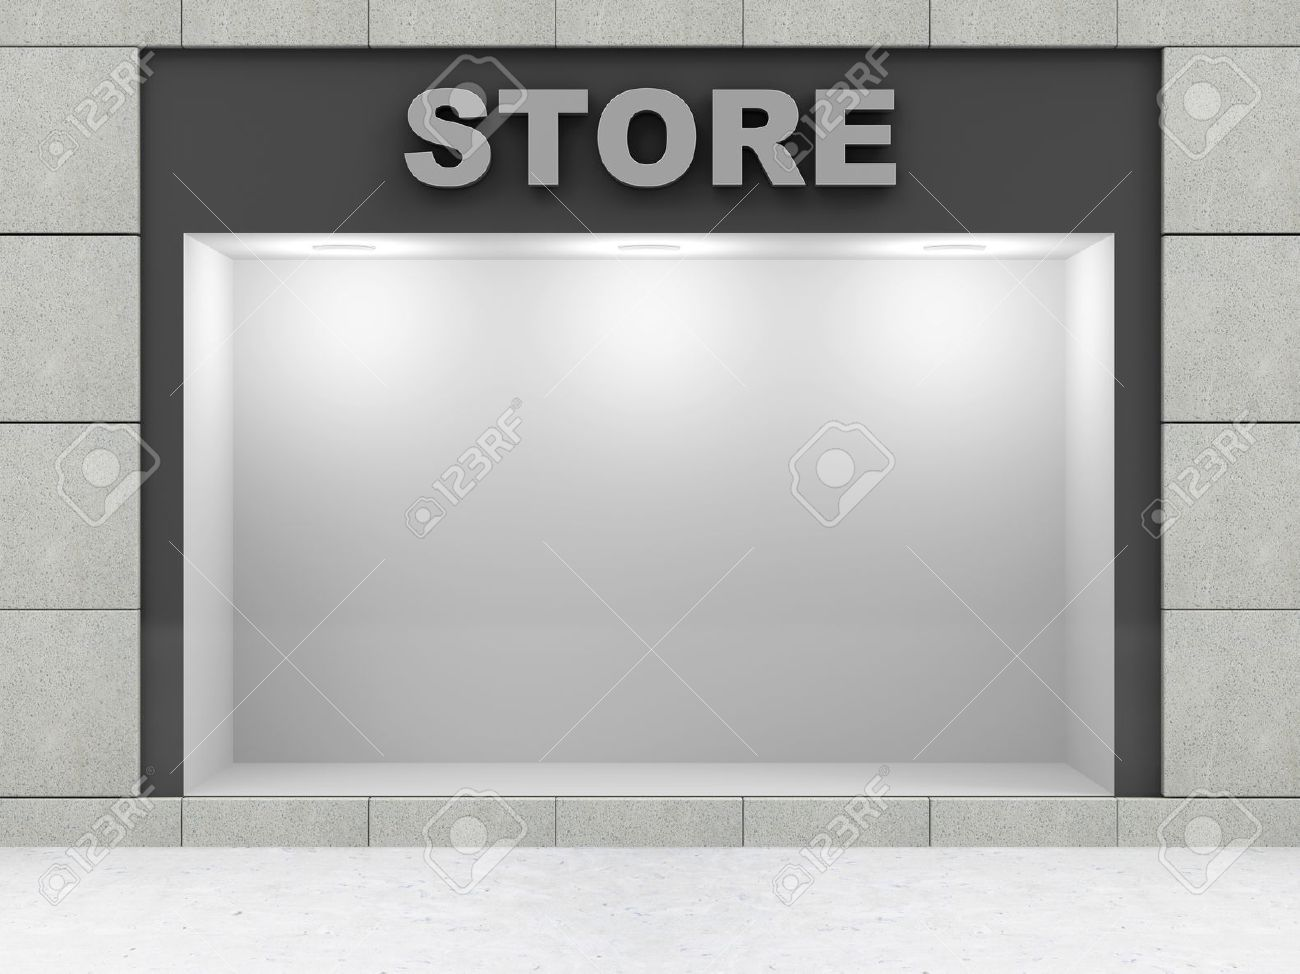 Fenster Stores Stock Photo